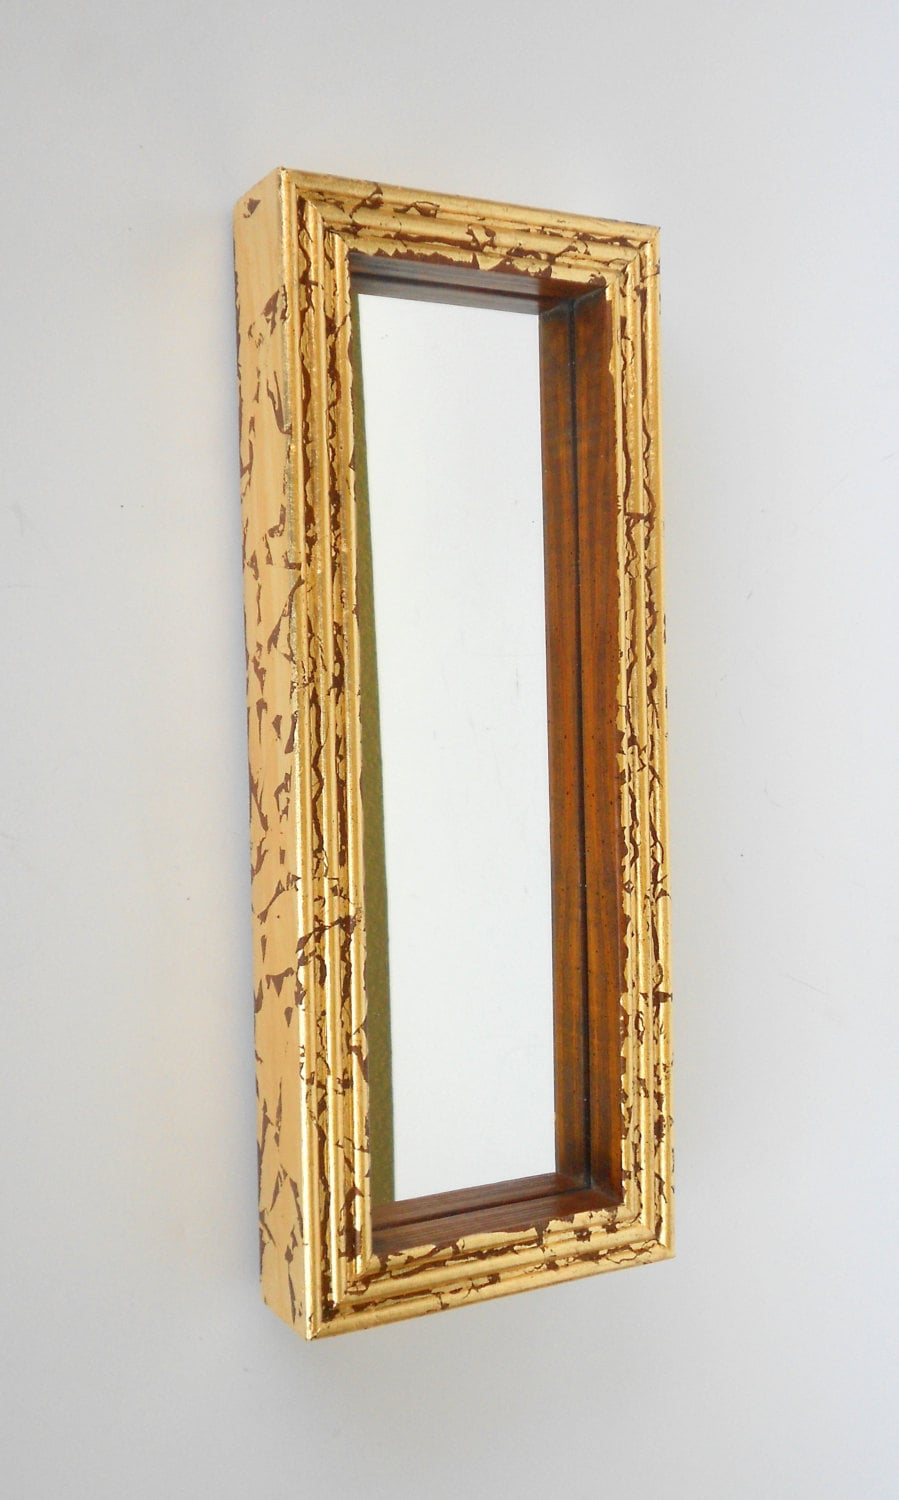 X5 mirror narrow mirror decorative wall mirror for Narrow wall mirror decorative